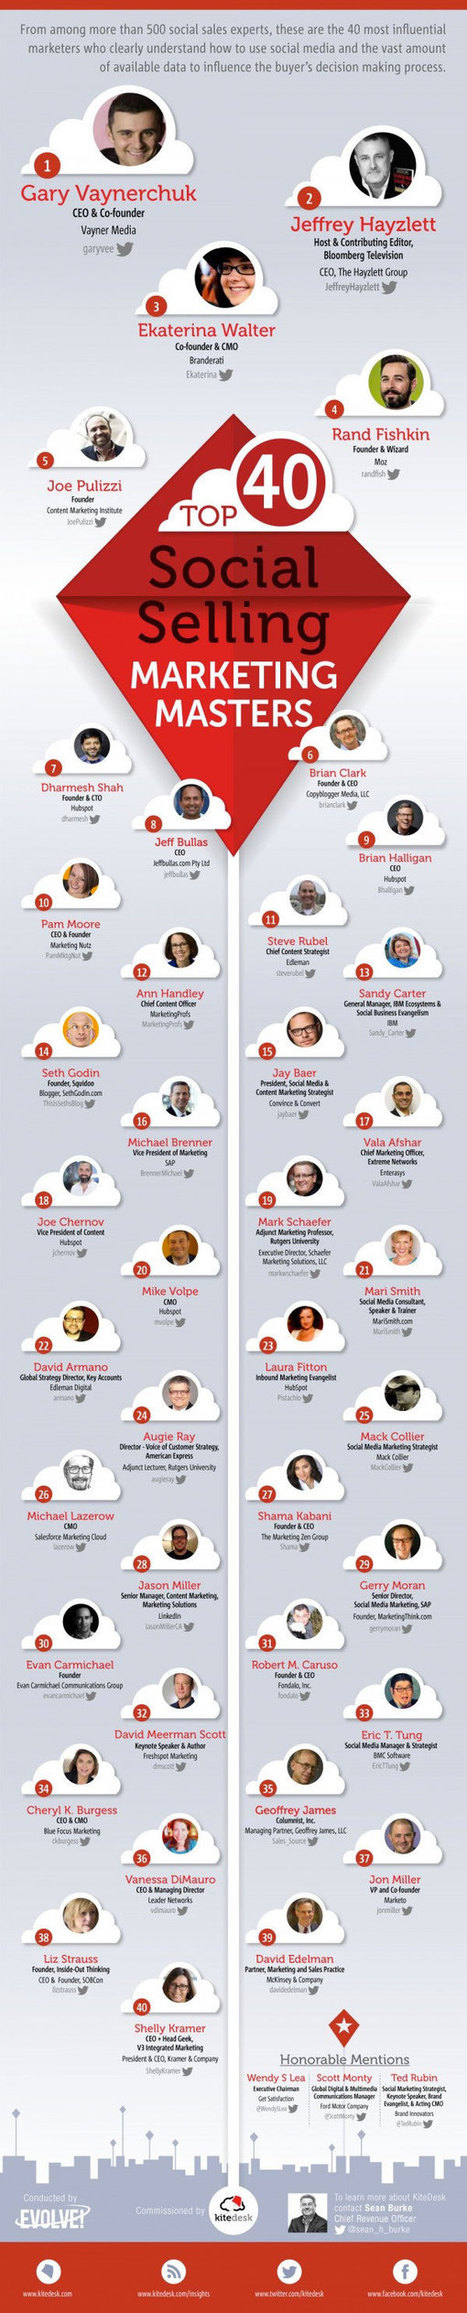 The World's Most Influential Social Media Marketing Masters (Infographic) - Business 2 Community   Interesting Infographics   Scoop.it